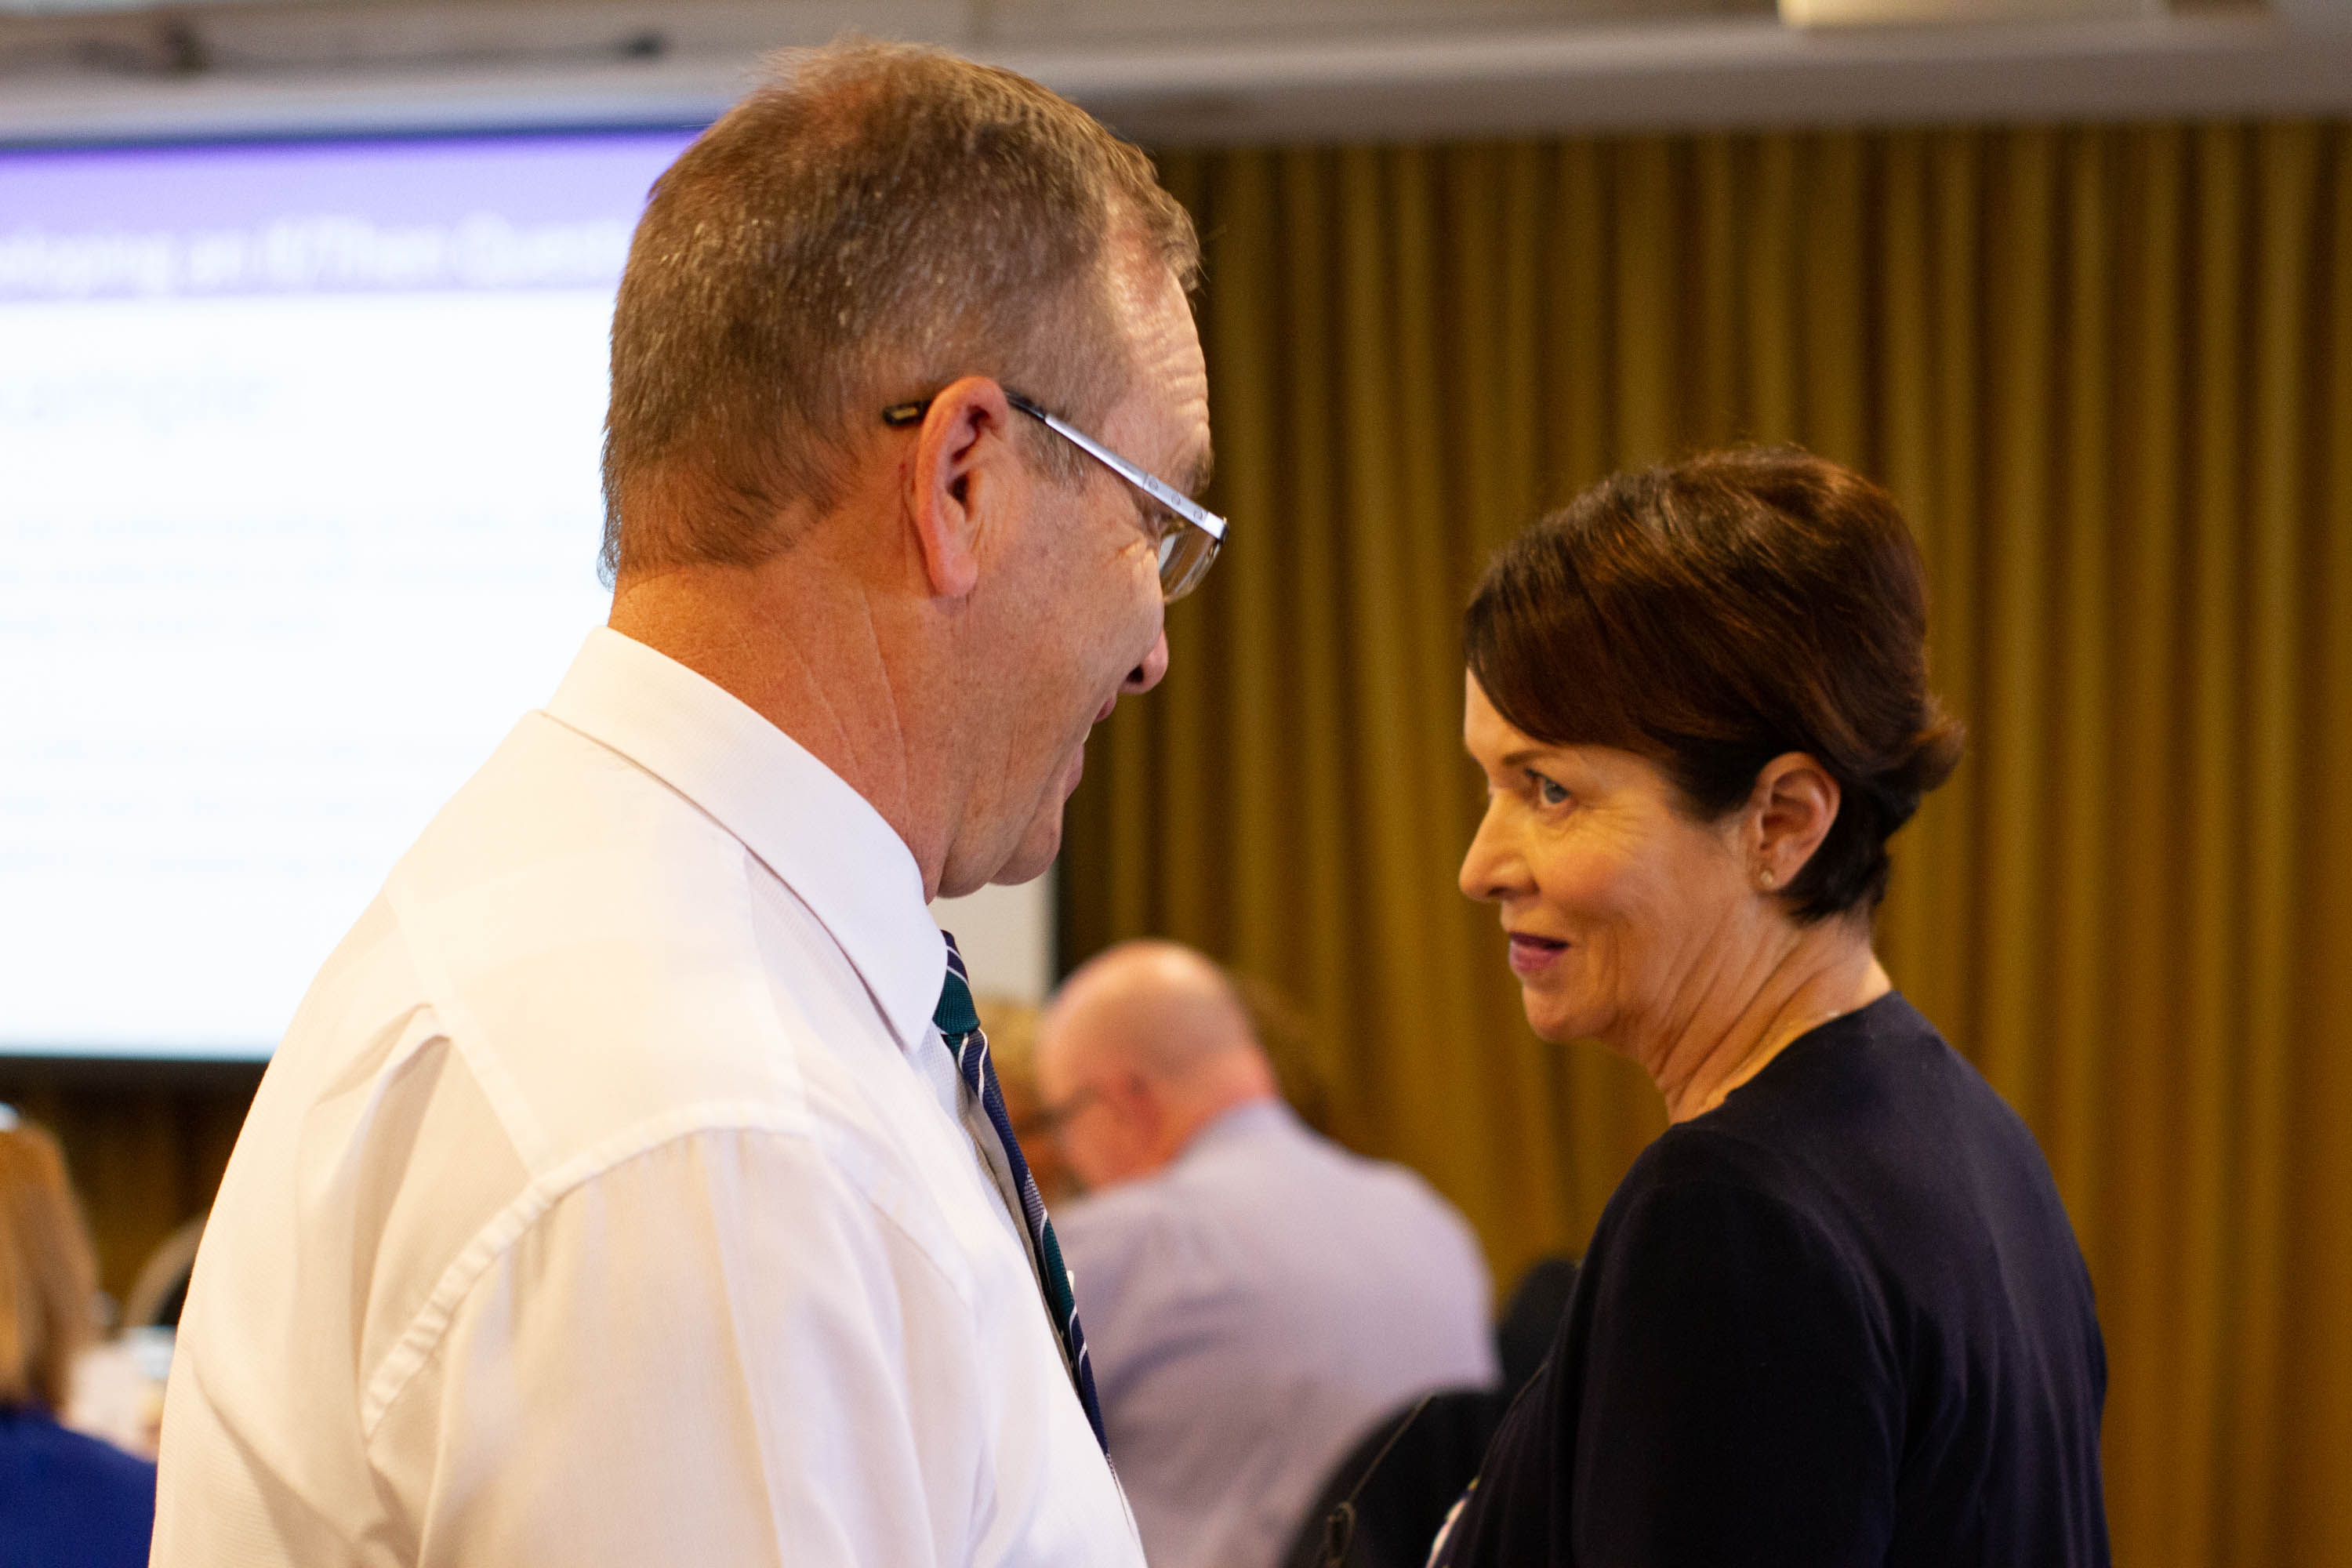 Lyn and Superintendent John - Collaborat